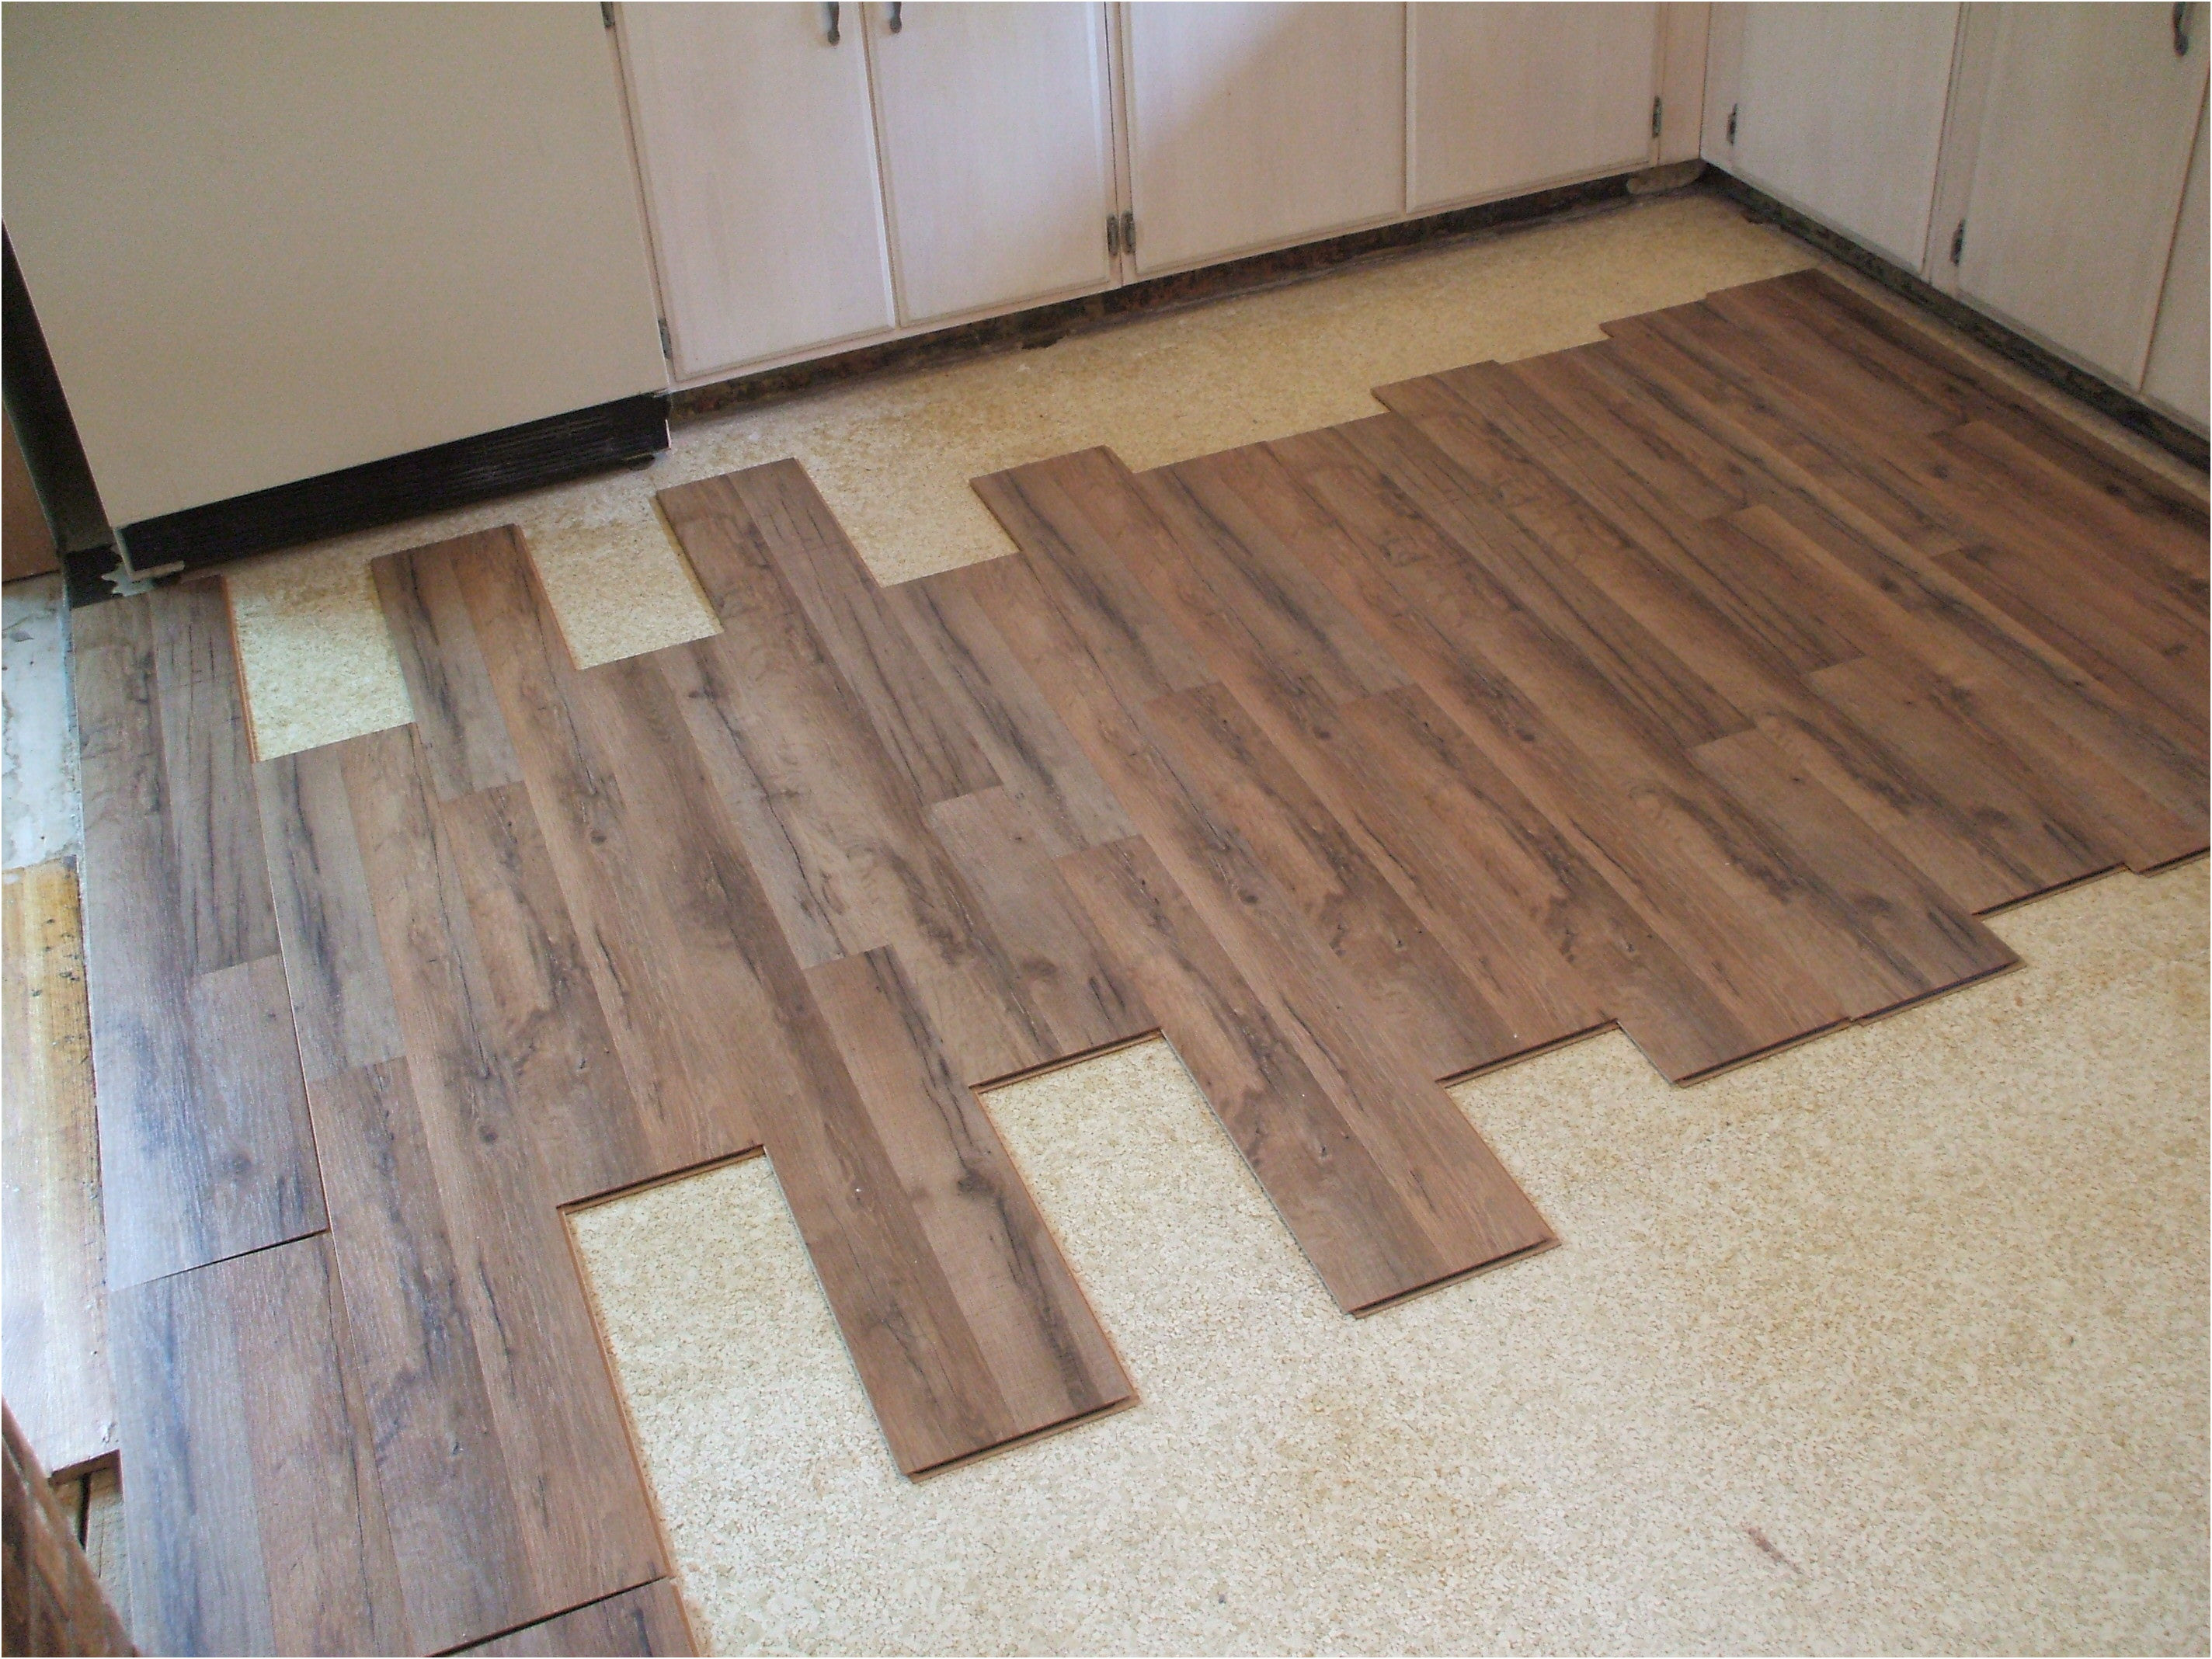 Hand Scraped Hardwood Flooring Sale Of How to Install Prefinished Hardwood Flooring On Concrete New Pertaining to How to Install Prefinished Hardwood Flooring On Concrete Unique Floor Floor Installod Floors Cost Per Square